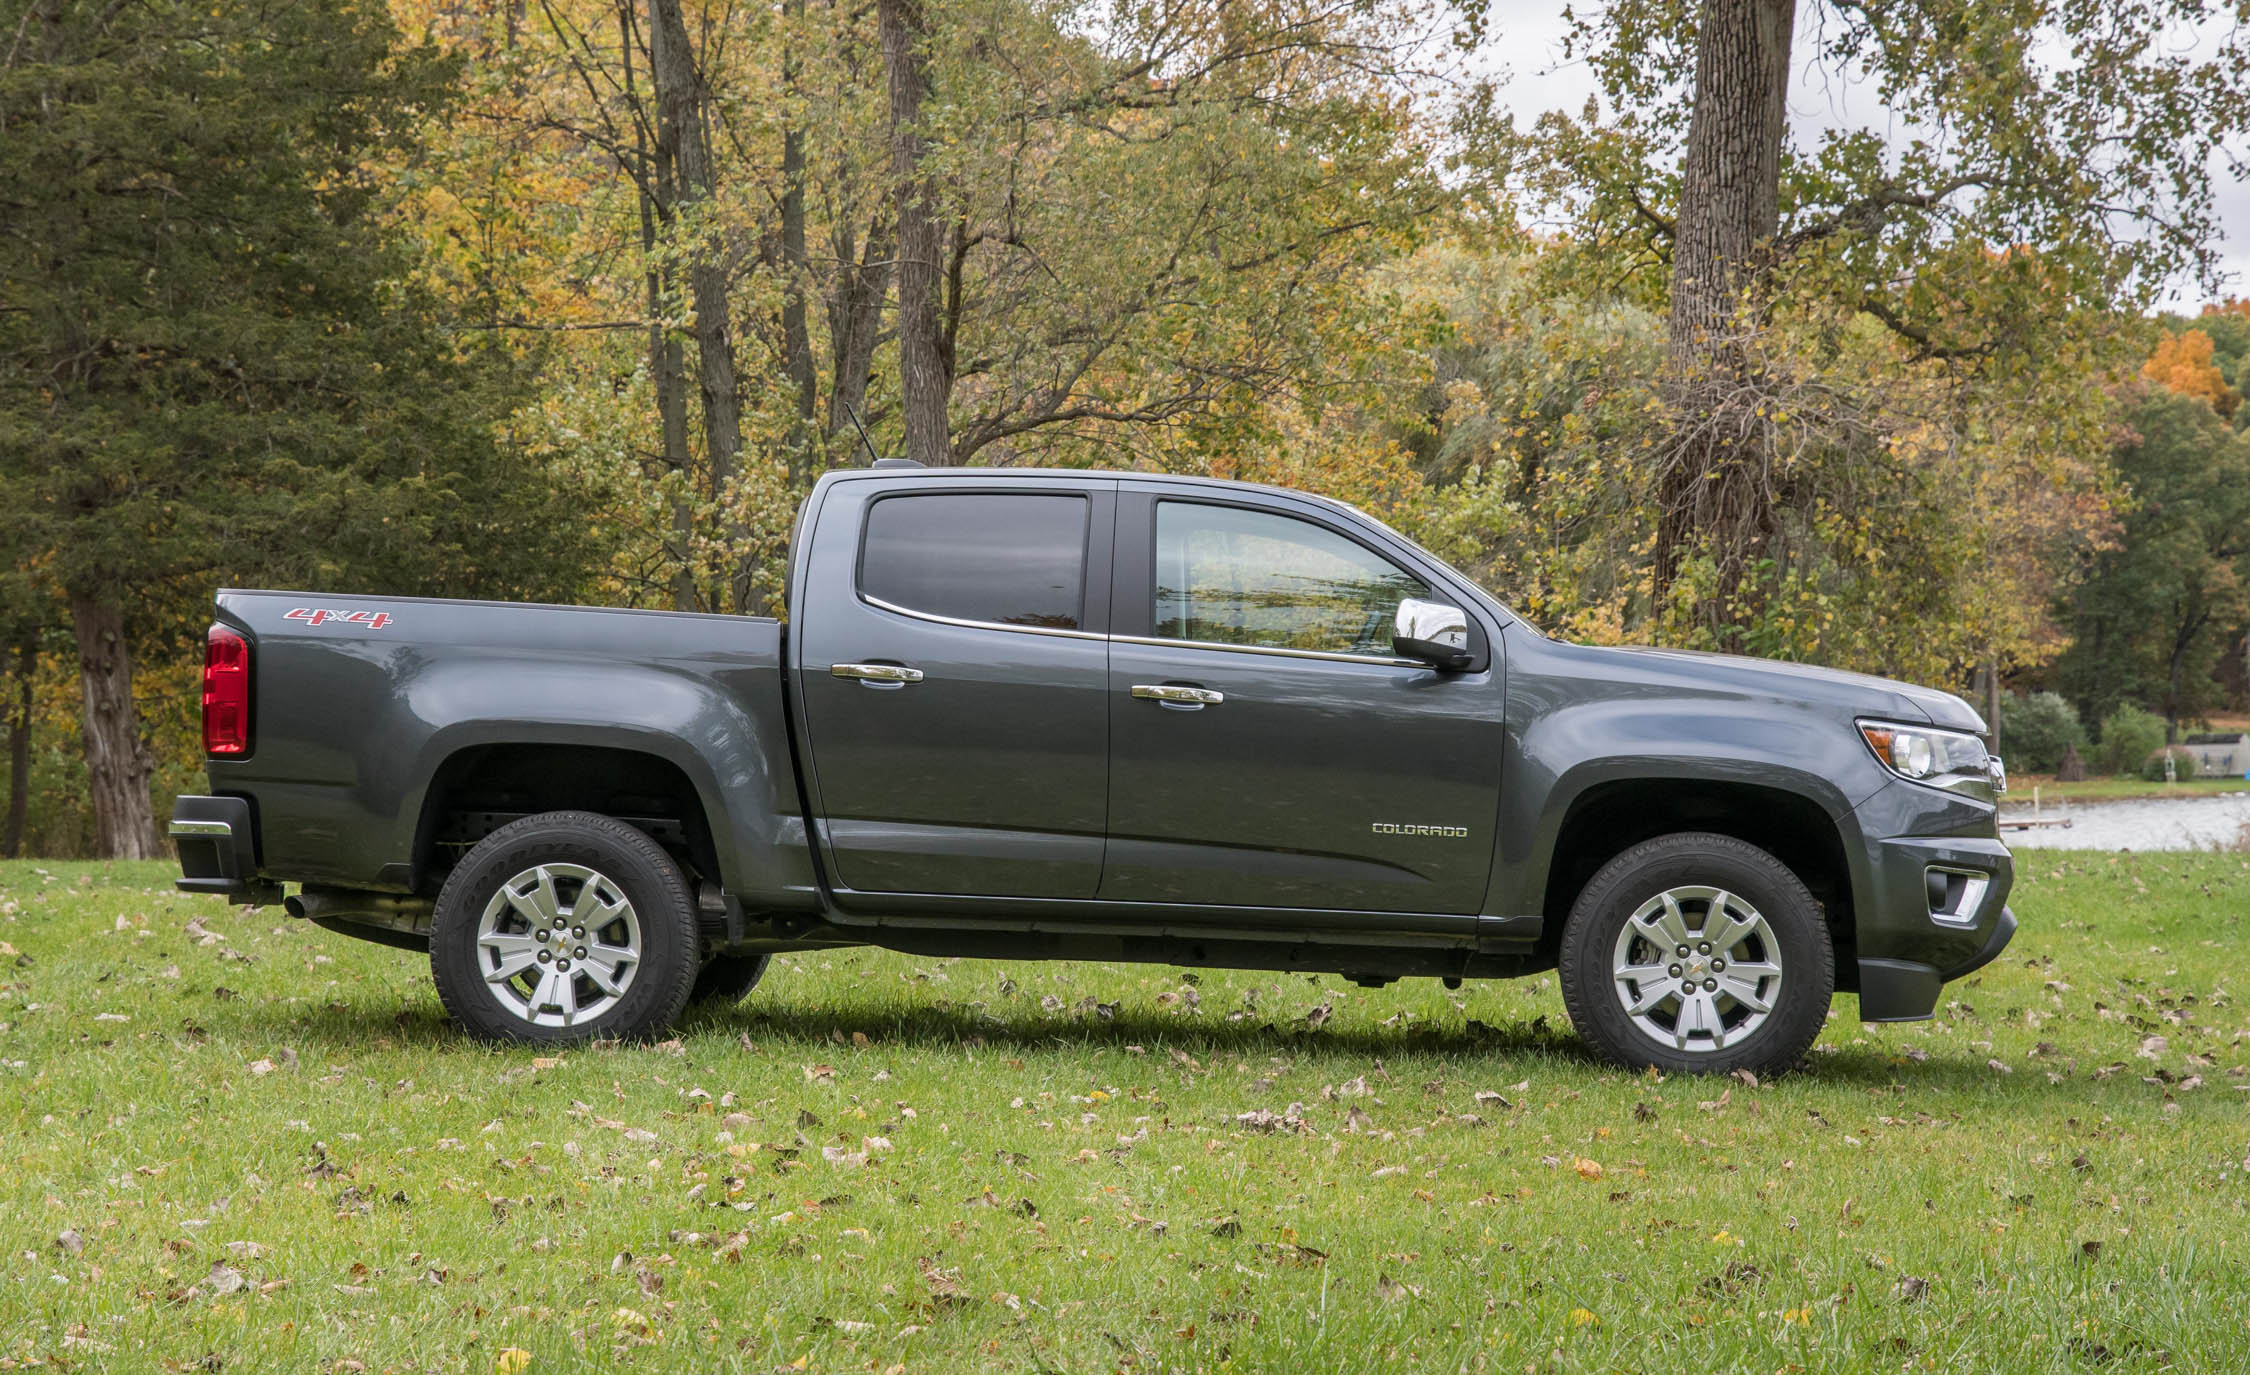 Chevy Colorado Colors